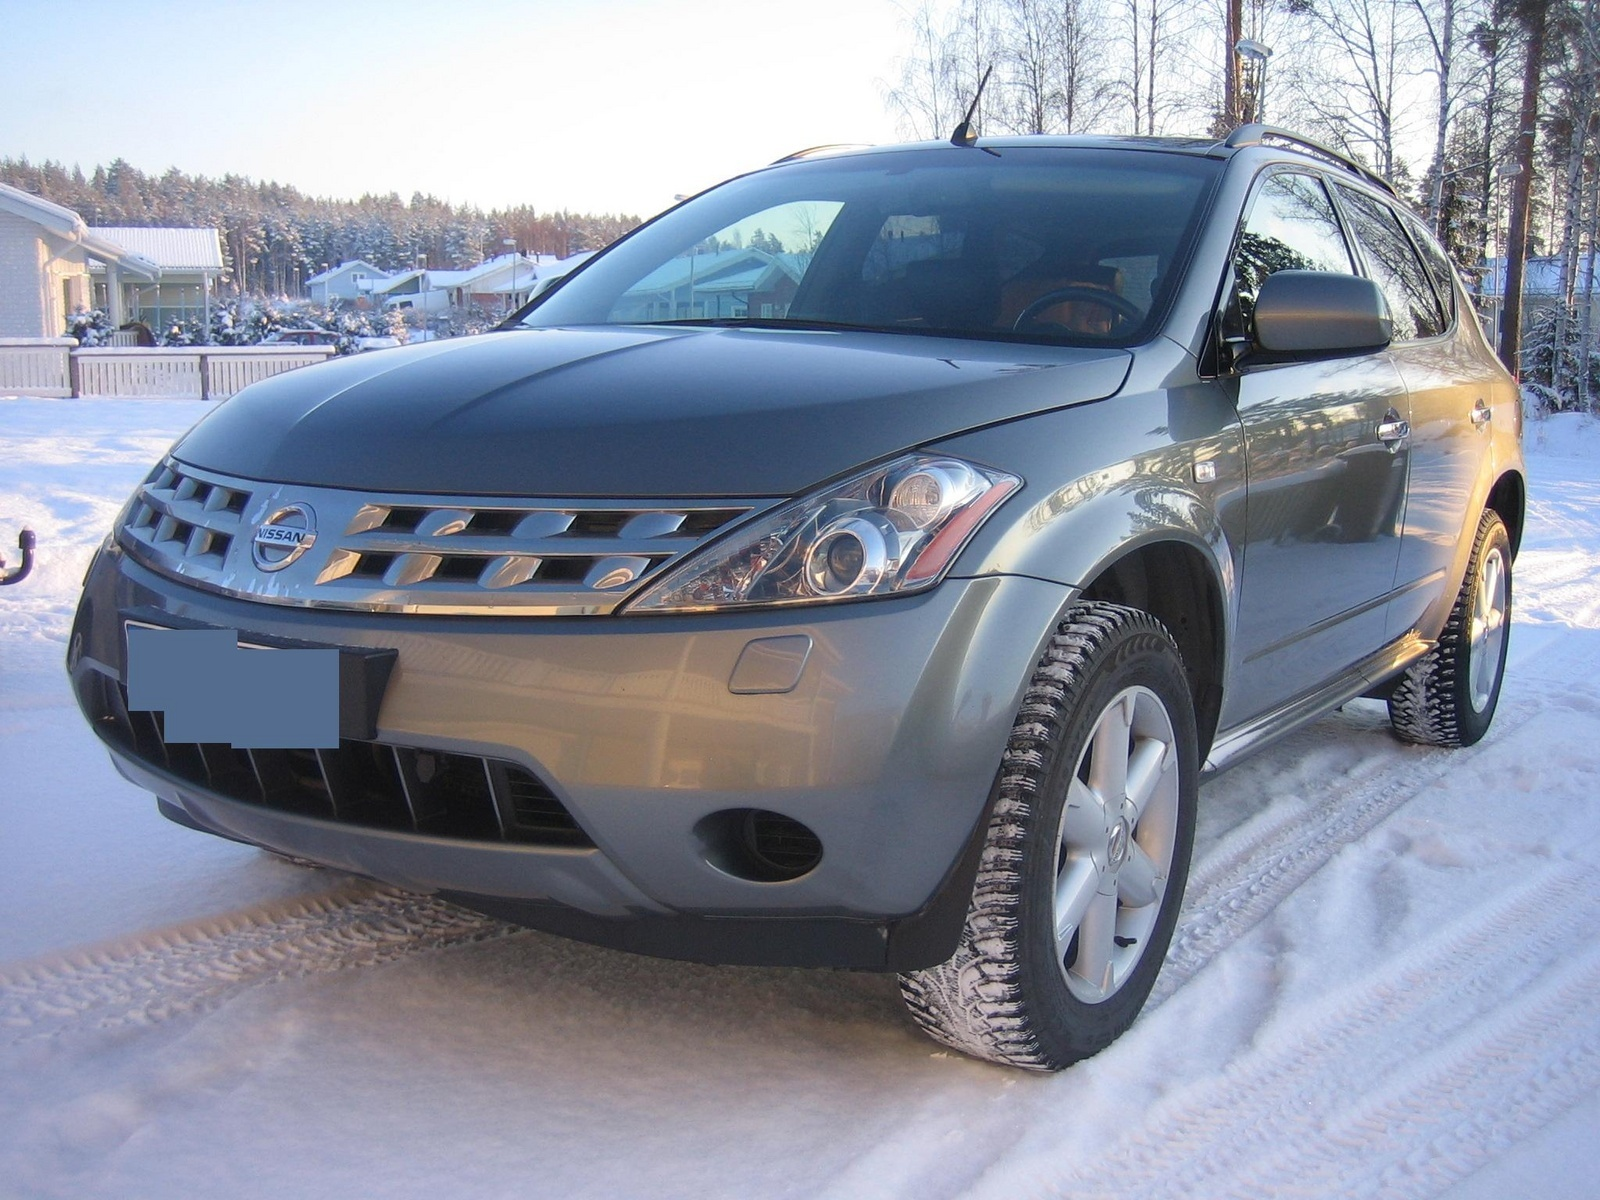 2006 nissan murano overview cargurus. Black Bedroom Furniture Sets. Home Design Ideas